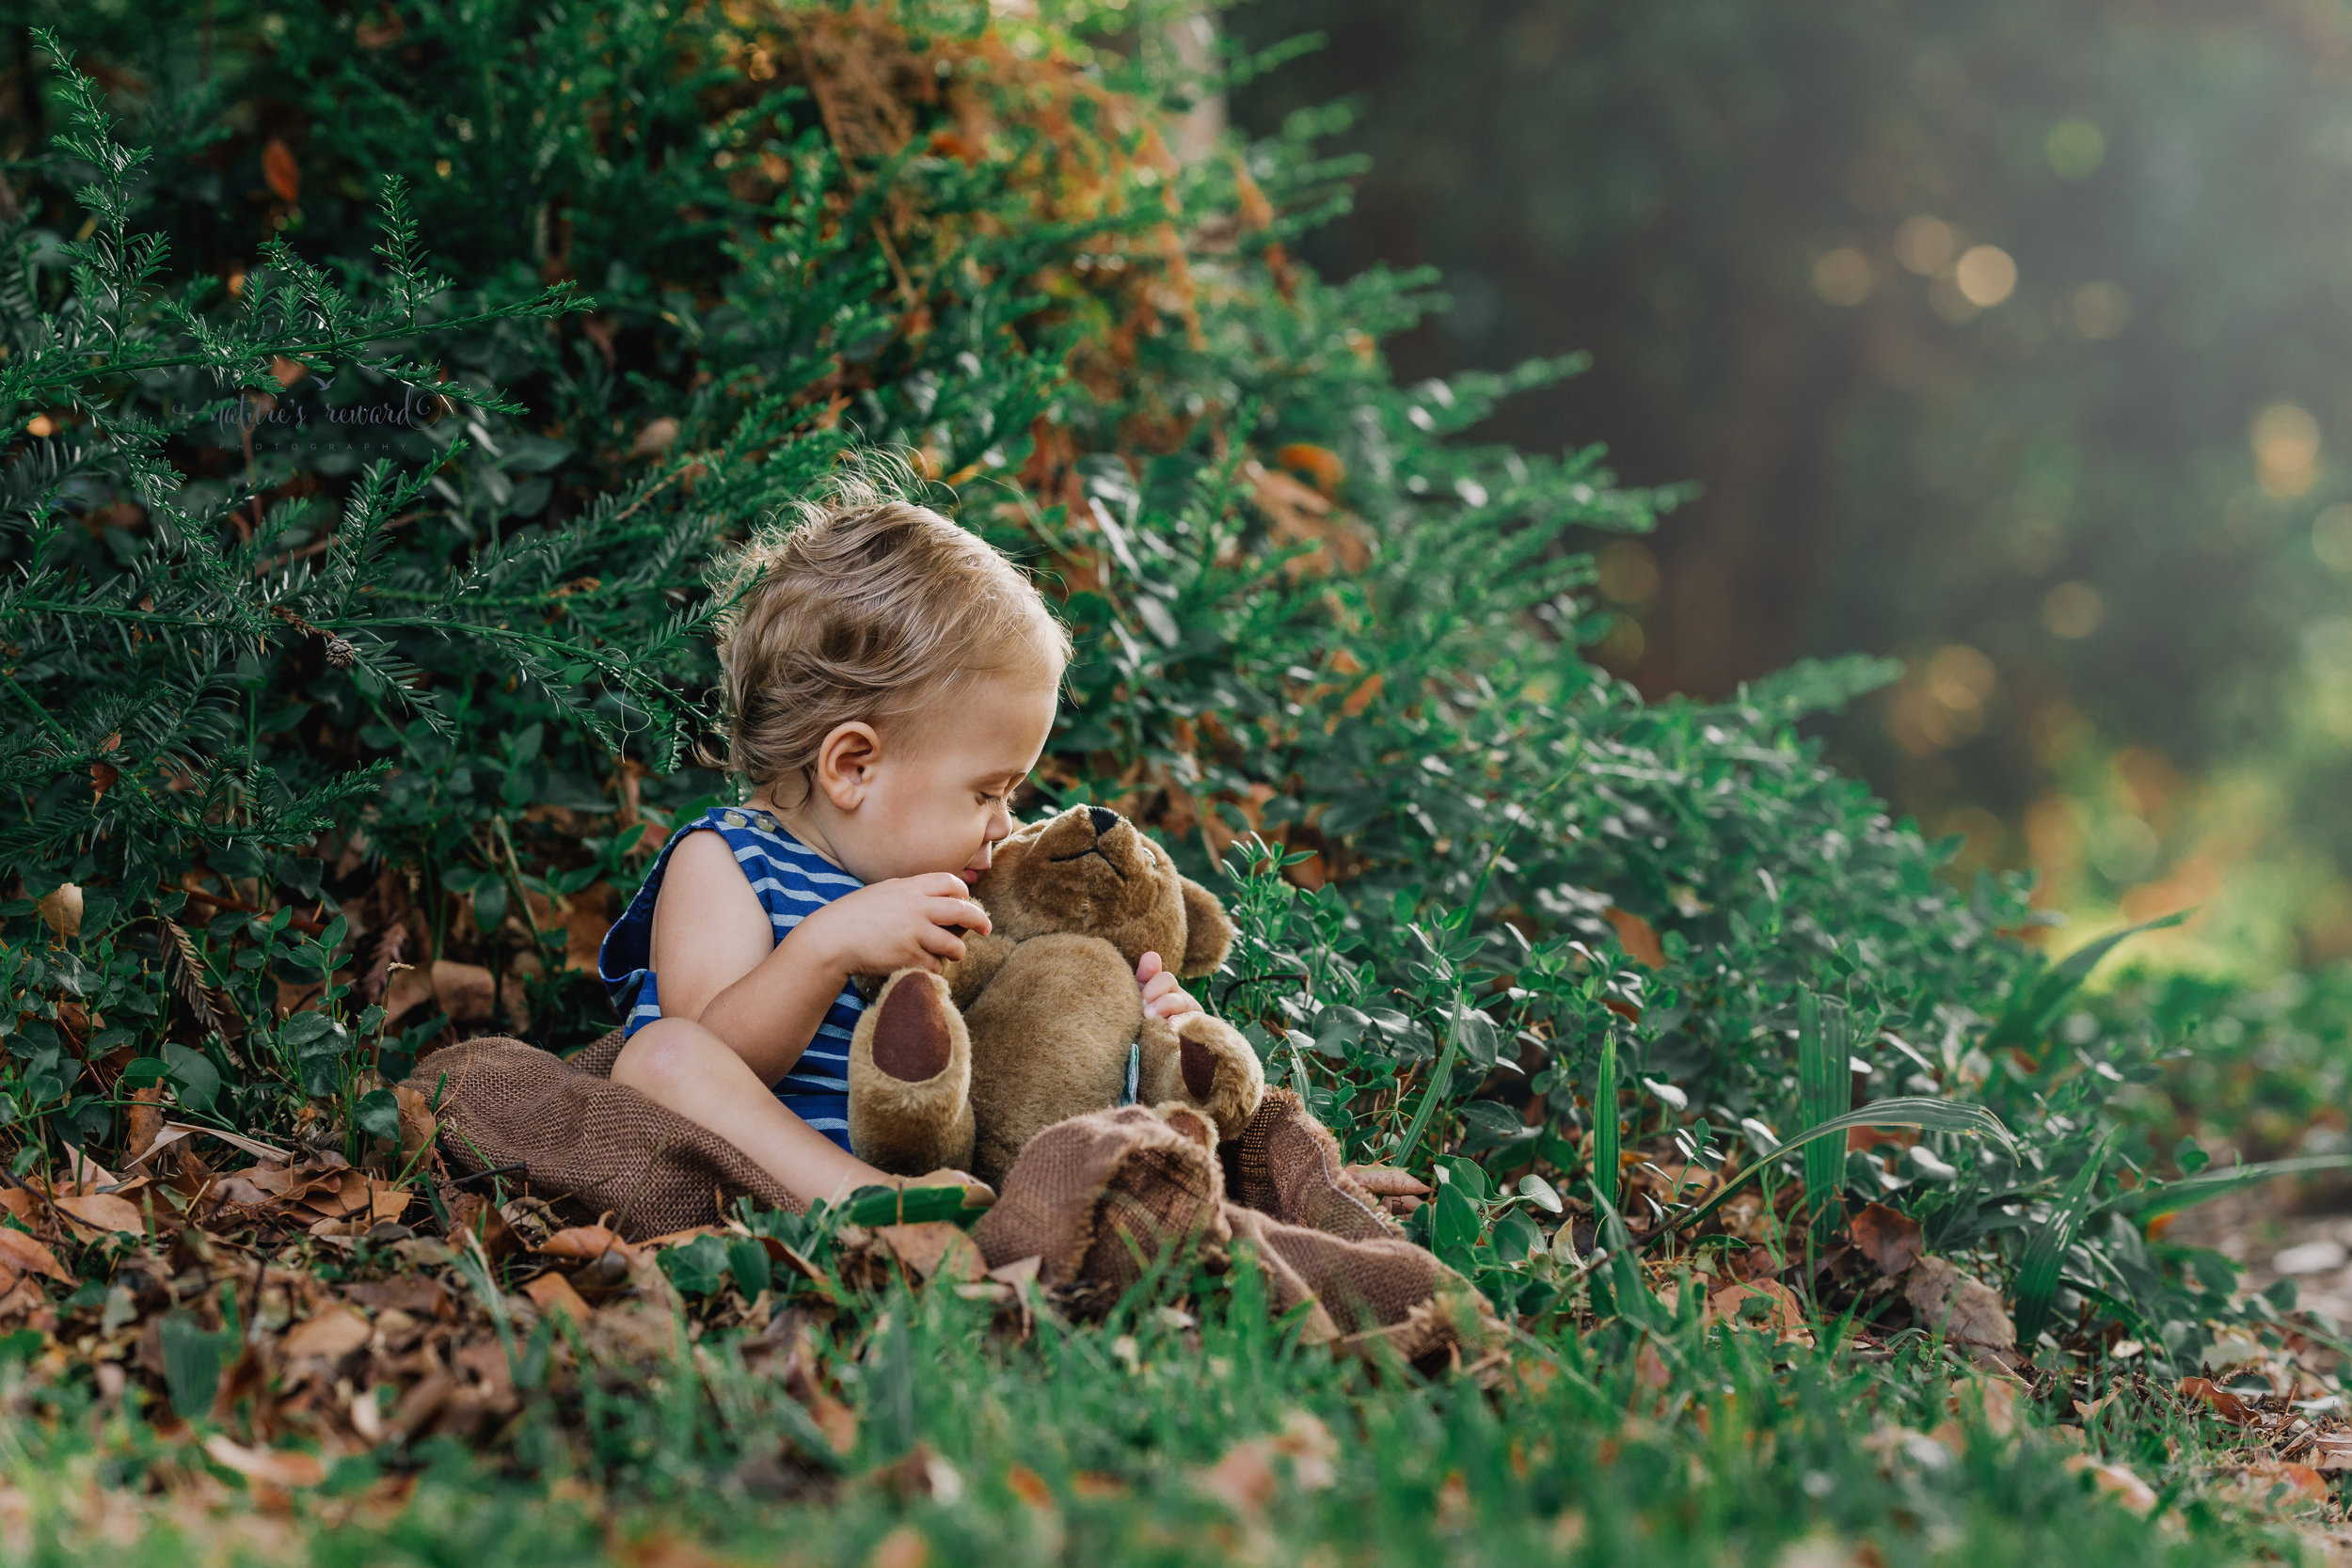 Gorgeous Baby boy kissing his teddy smiling in this vintage inspired portrait by Nature's Reward Photography